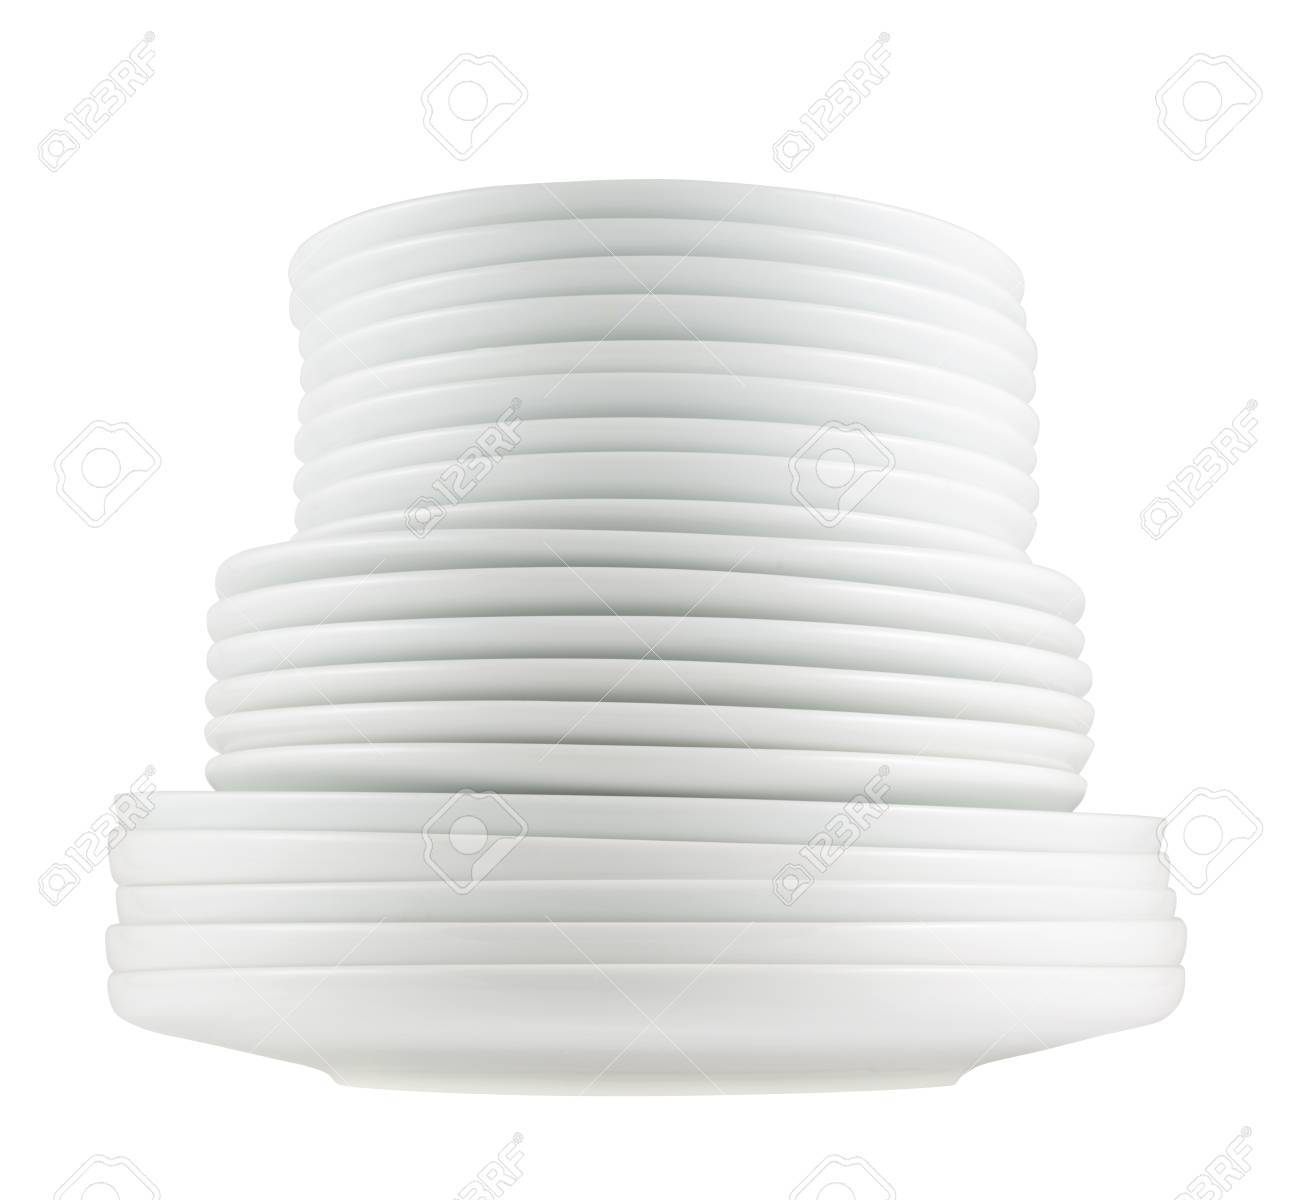 Accurate pile stack of the round ceramic white dish plates isolated over white background side  sc 1 st  123RF.com & Accurate Pile Stack Of The Round Ceramic White Dish Plates Isolated ...